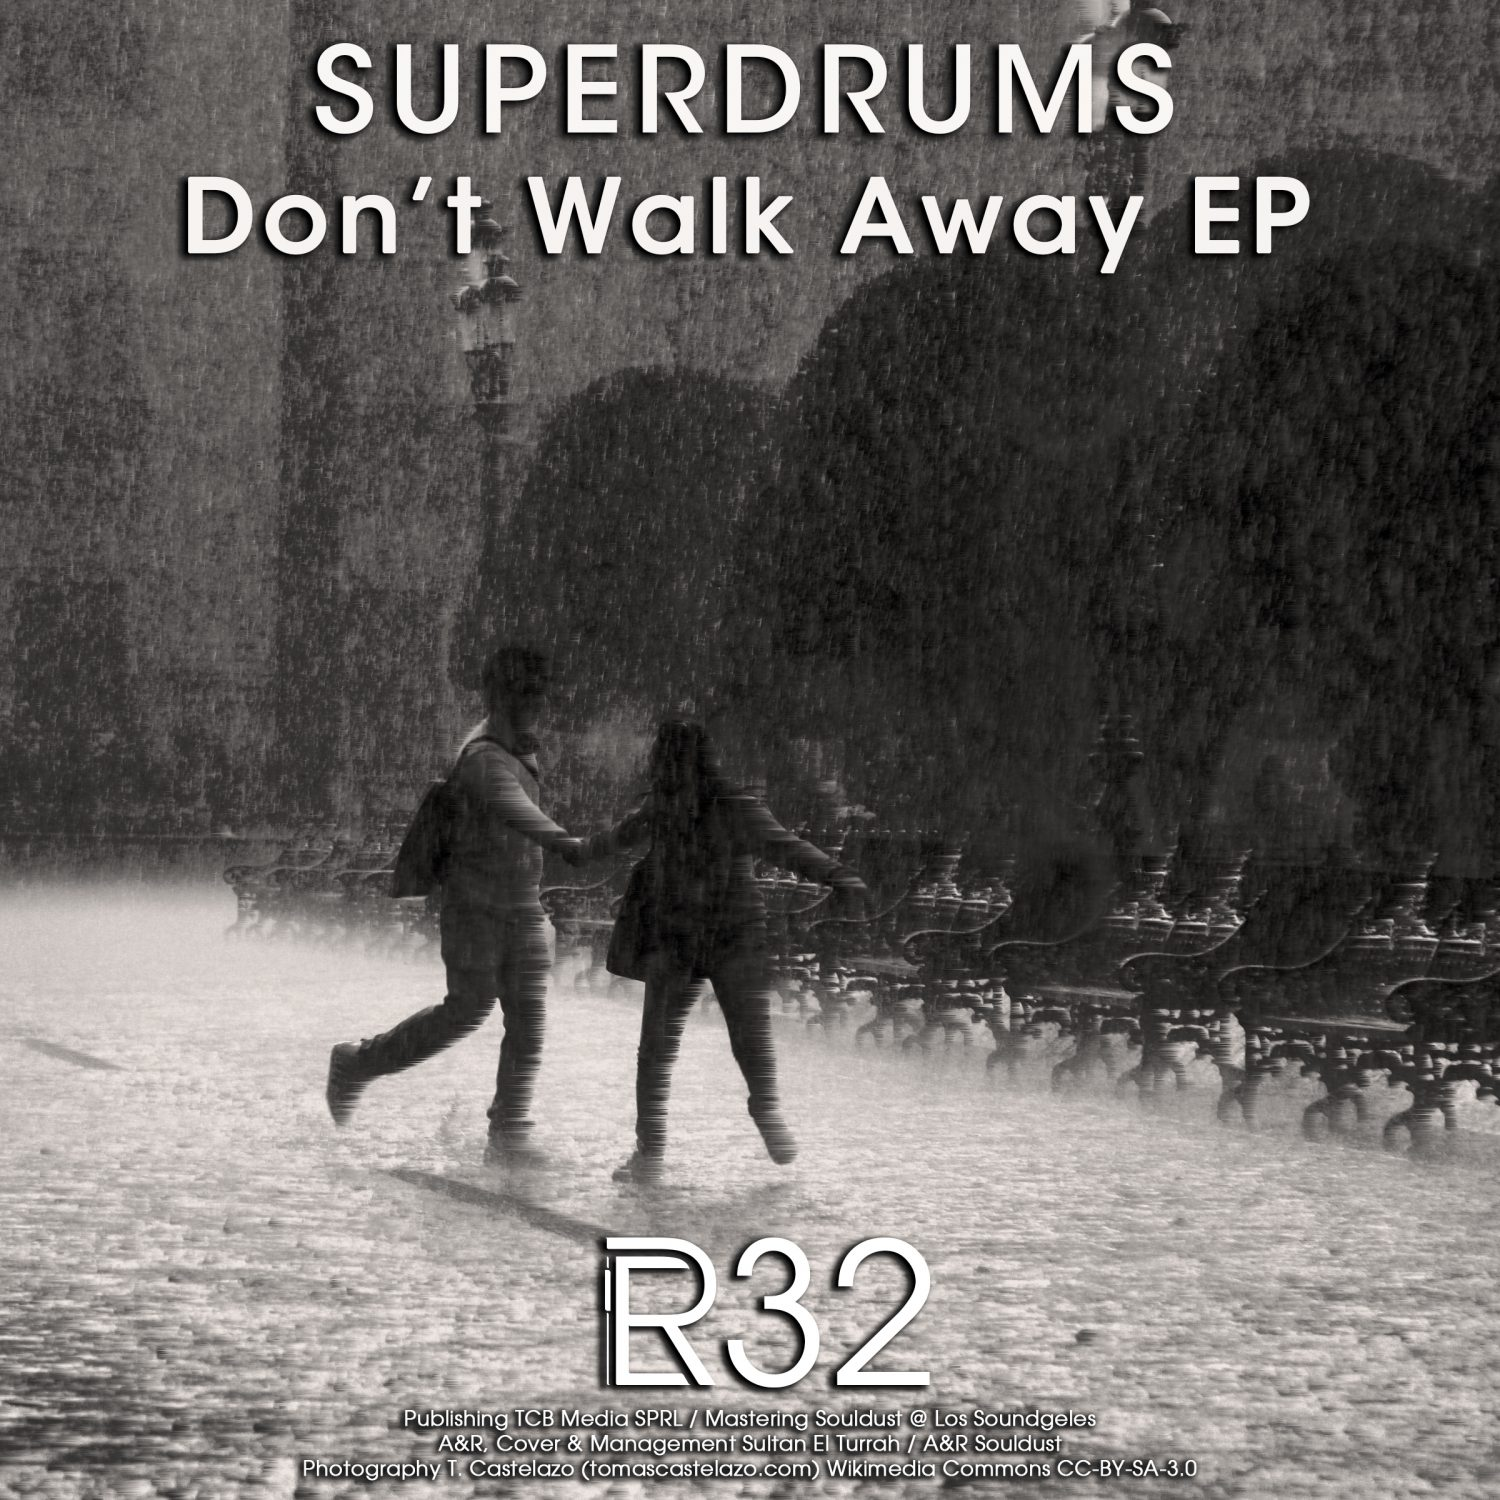 ER032 - Superdrums - Don't Walk Away EP - Electronical Reeds